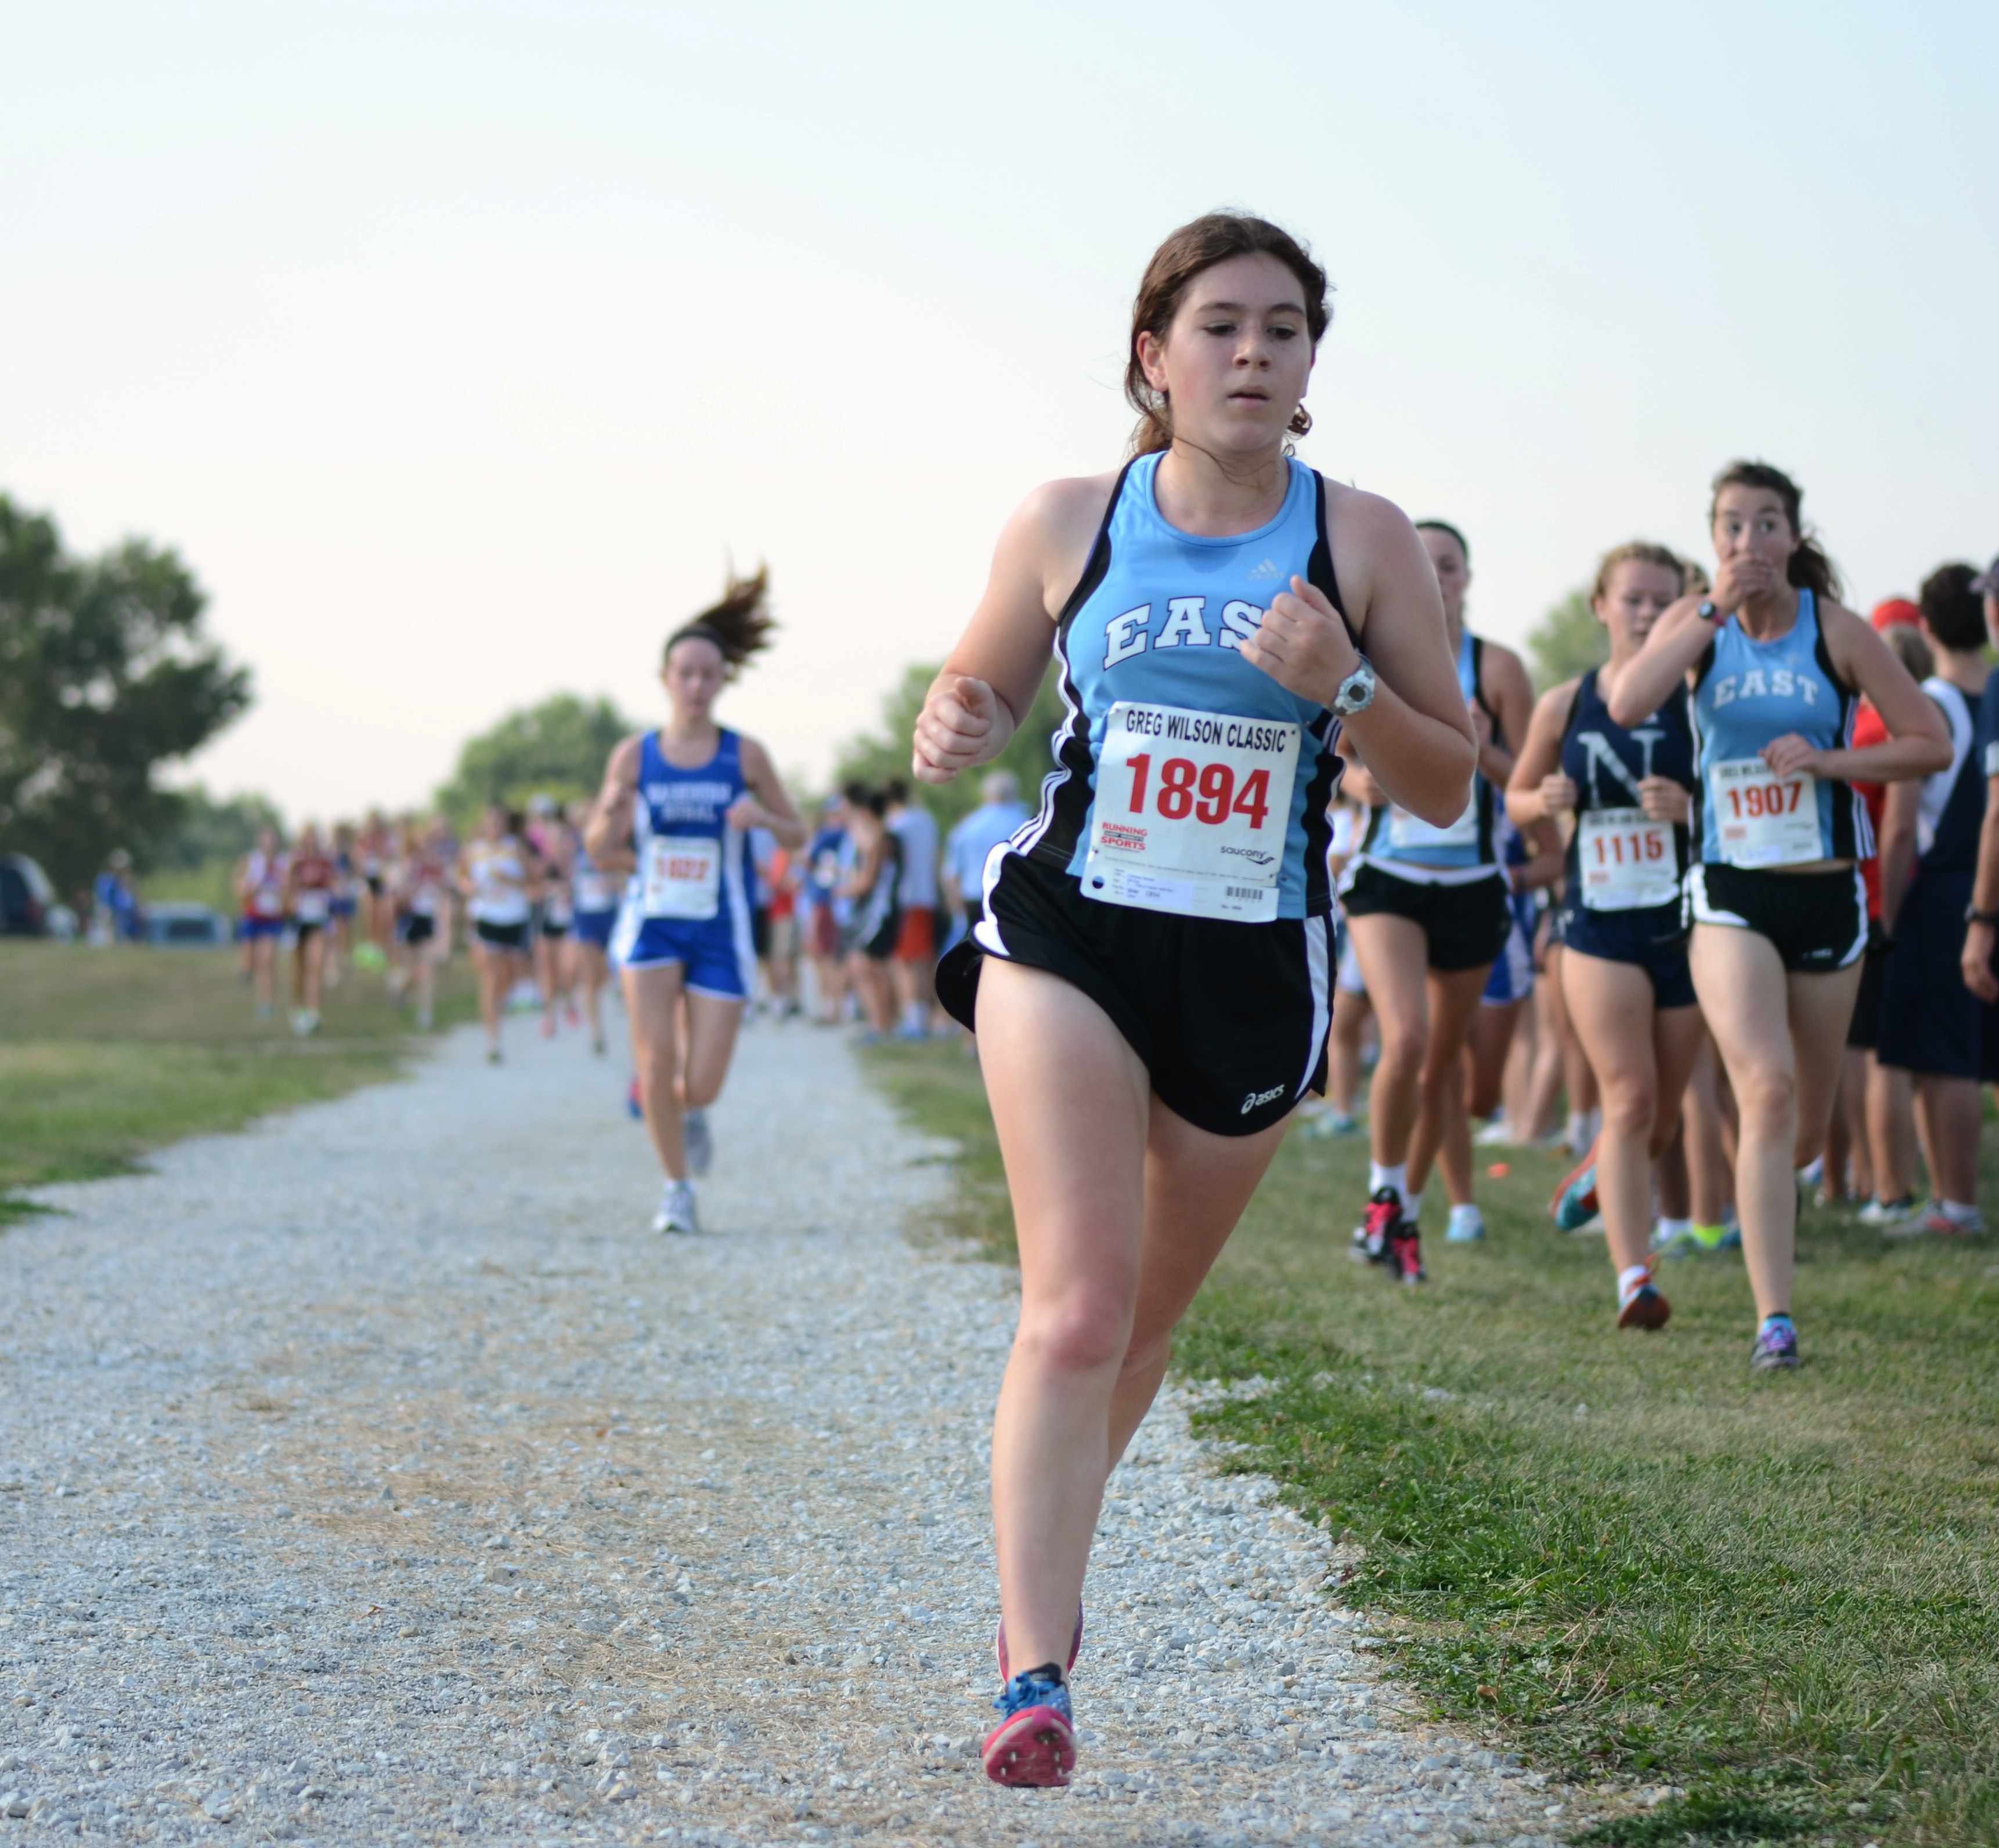 Gallery: Greg Wilson Classic Cross Country Meet